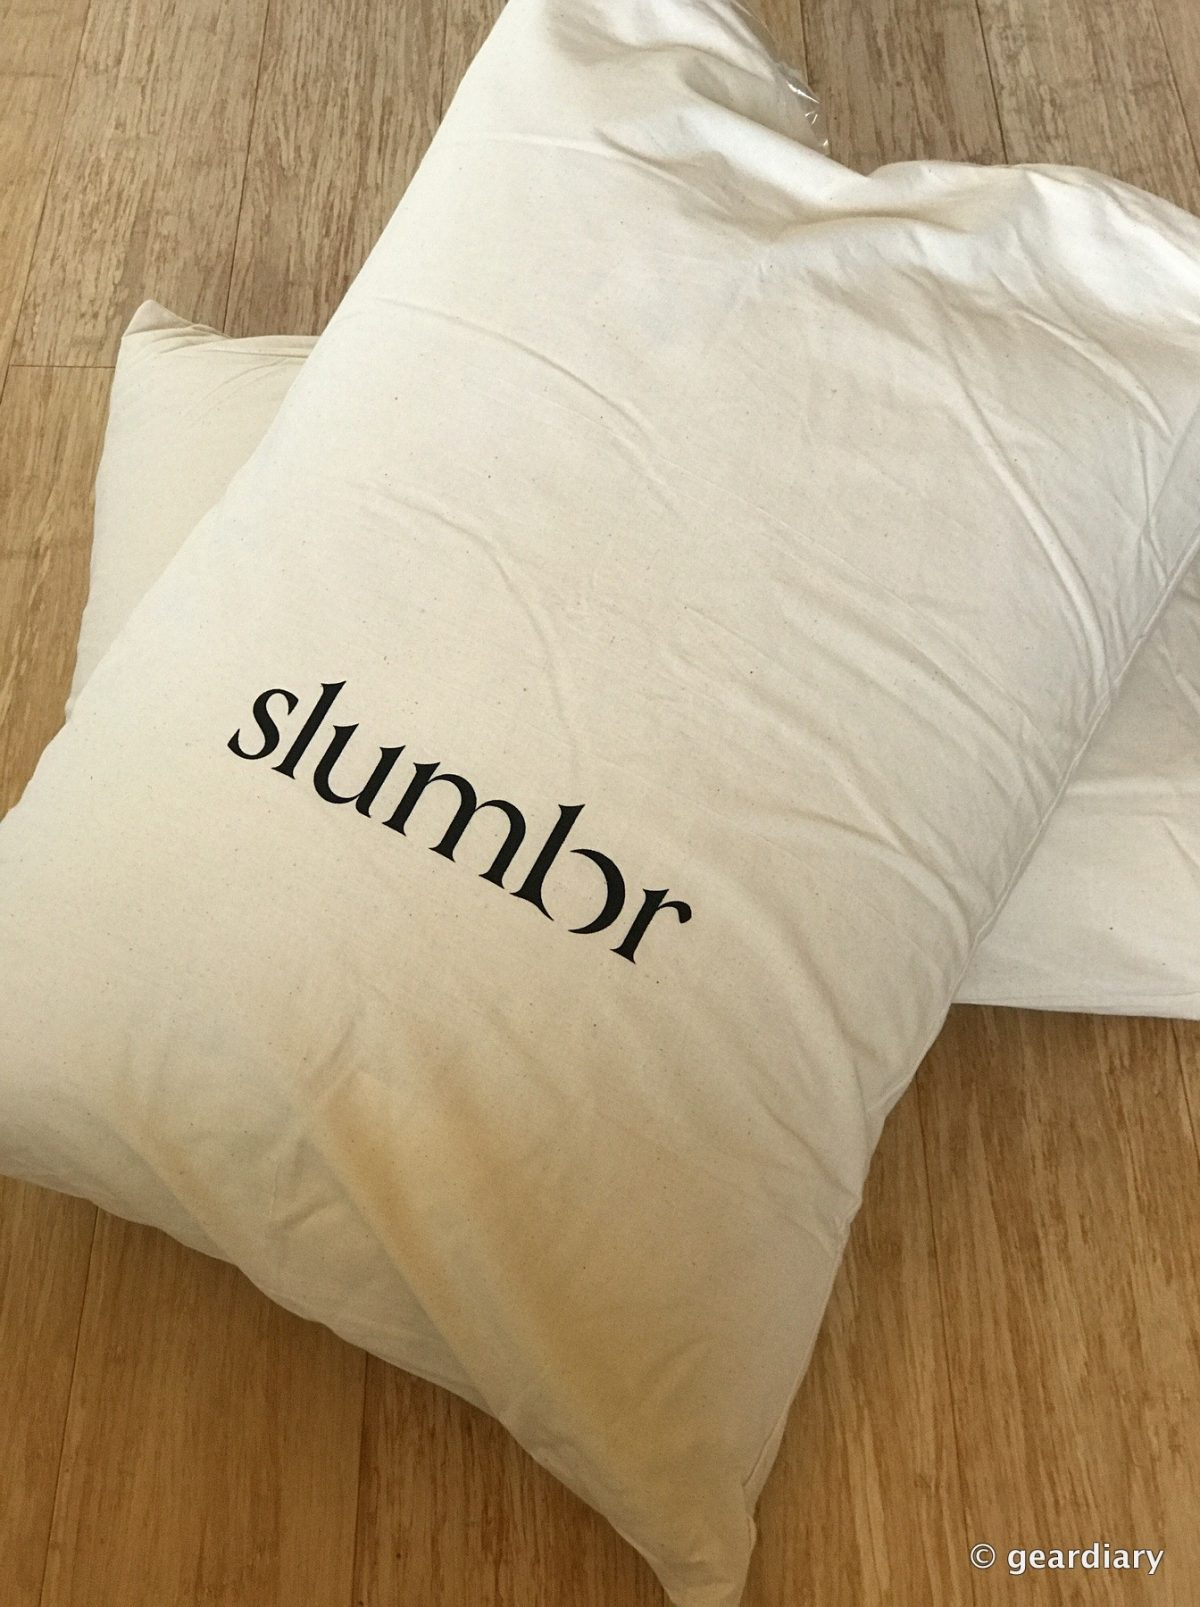 house initial best graphics lovely pillow pillows ideas for throw luxury svm of designs beds